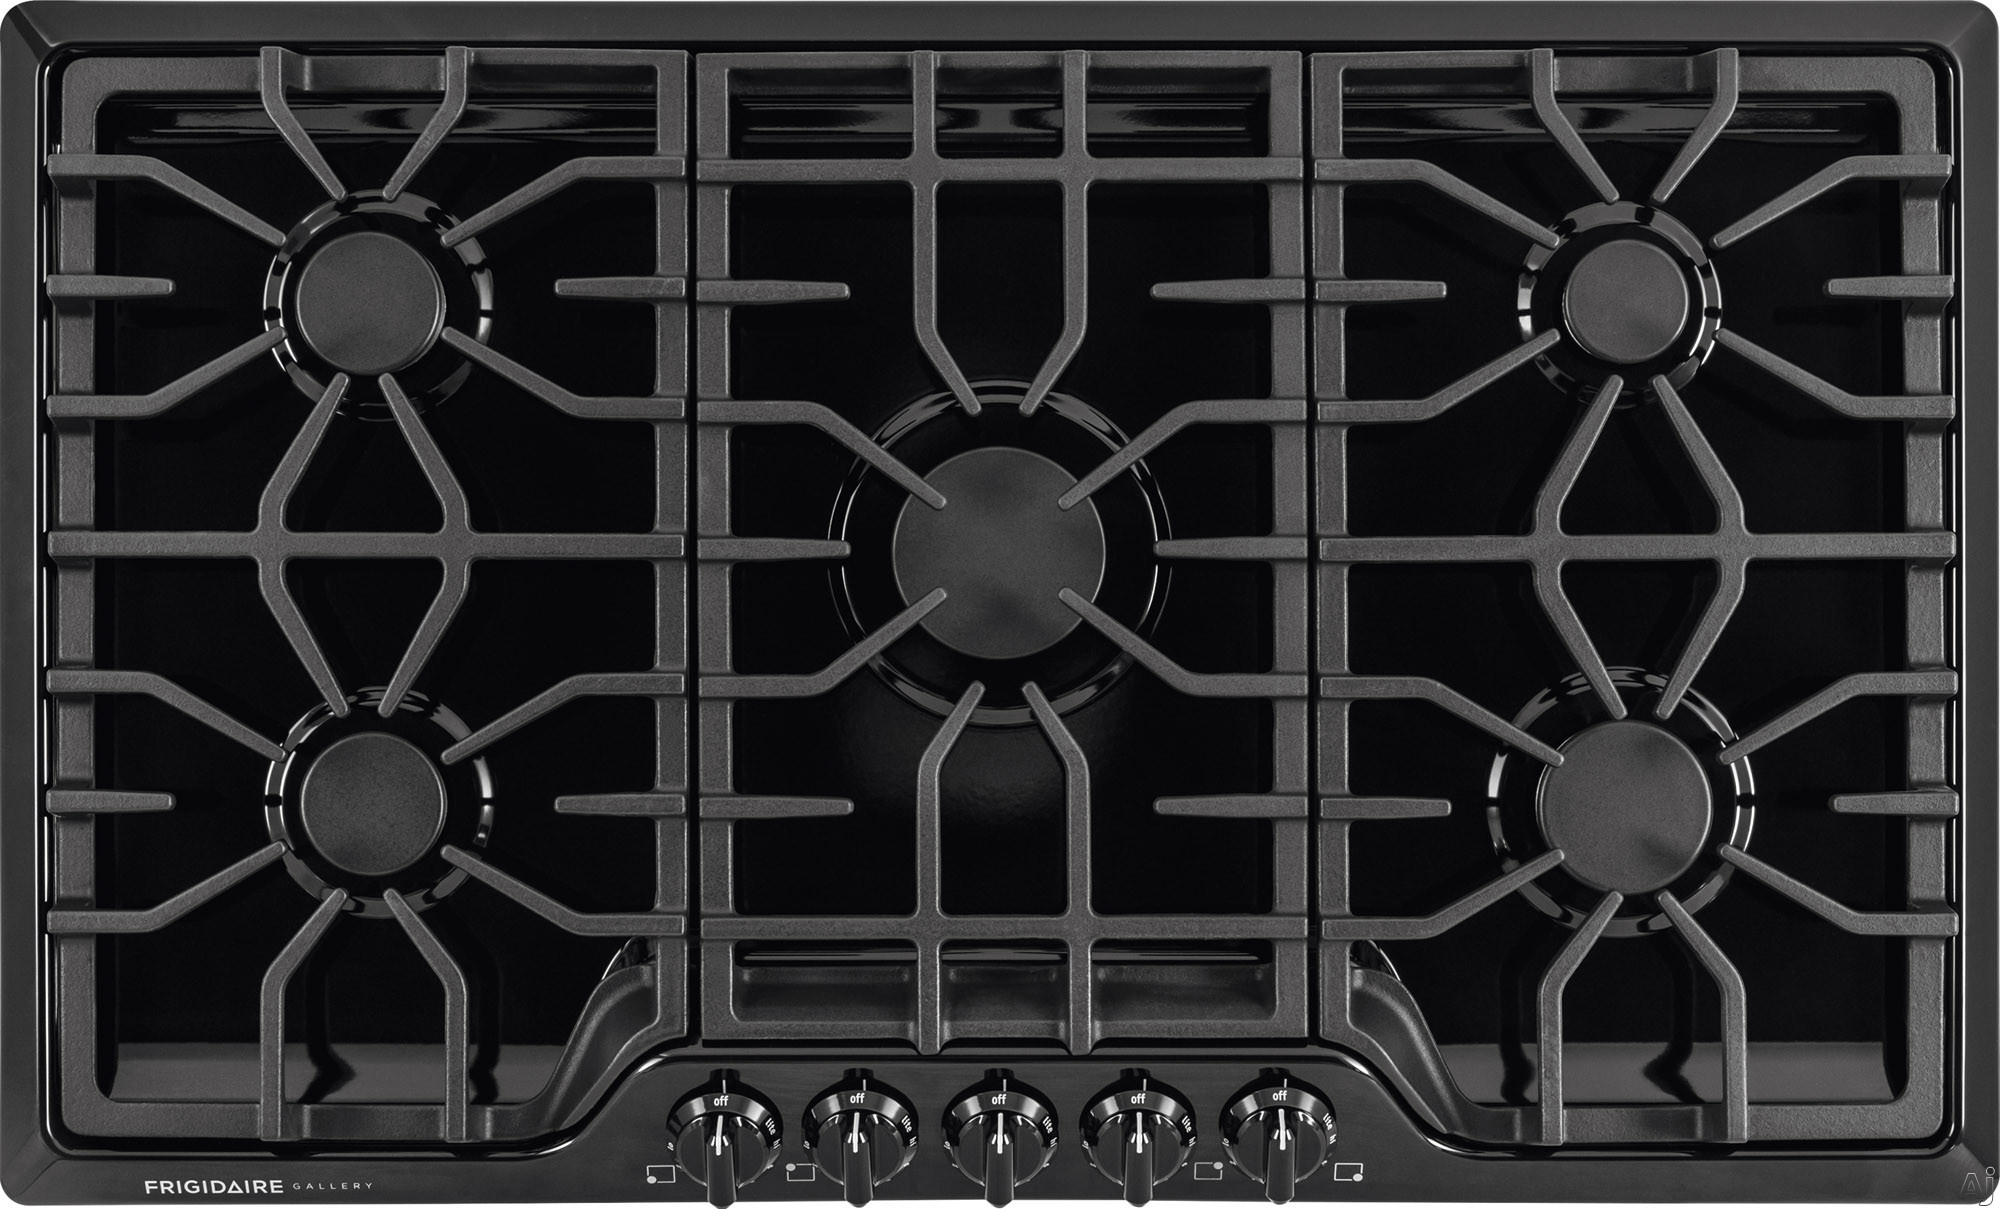 Frigidaire Gallery Series FGGC3645QB 36 Inch Gas Cooktop with 5 Sealed Burners, Continuous Cast Iron Grates, Express-Select Control Knobs and 450 to 18,000-BTU Center Burner and ADA Compliant: Black